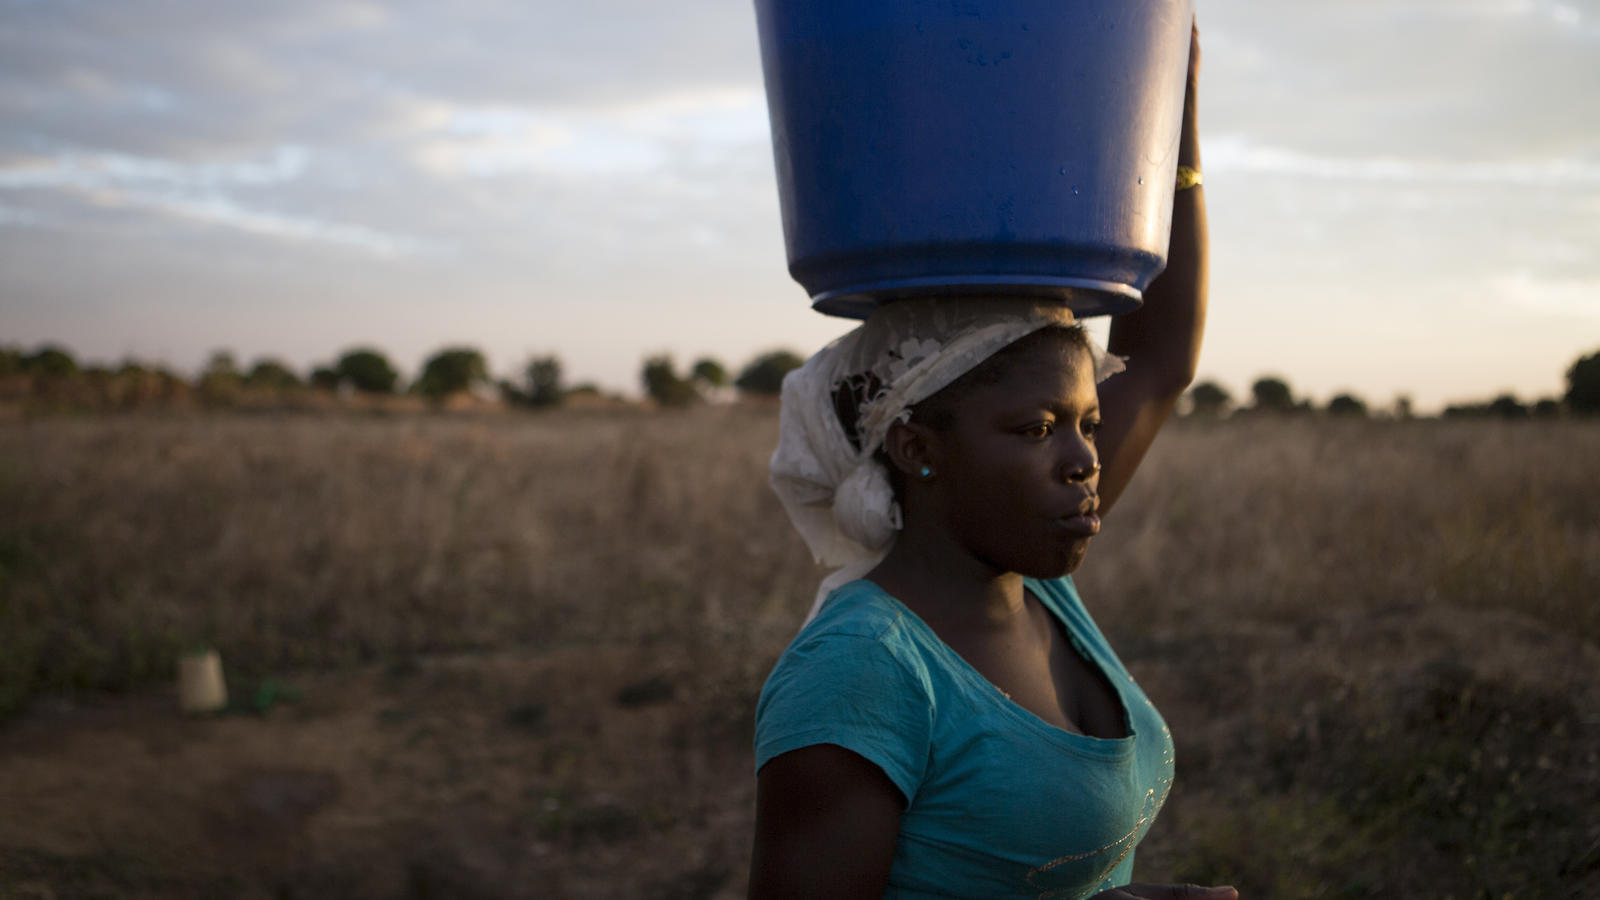 Ruth collects water in Malawi.